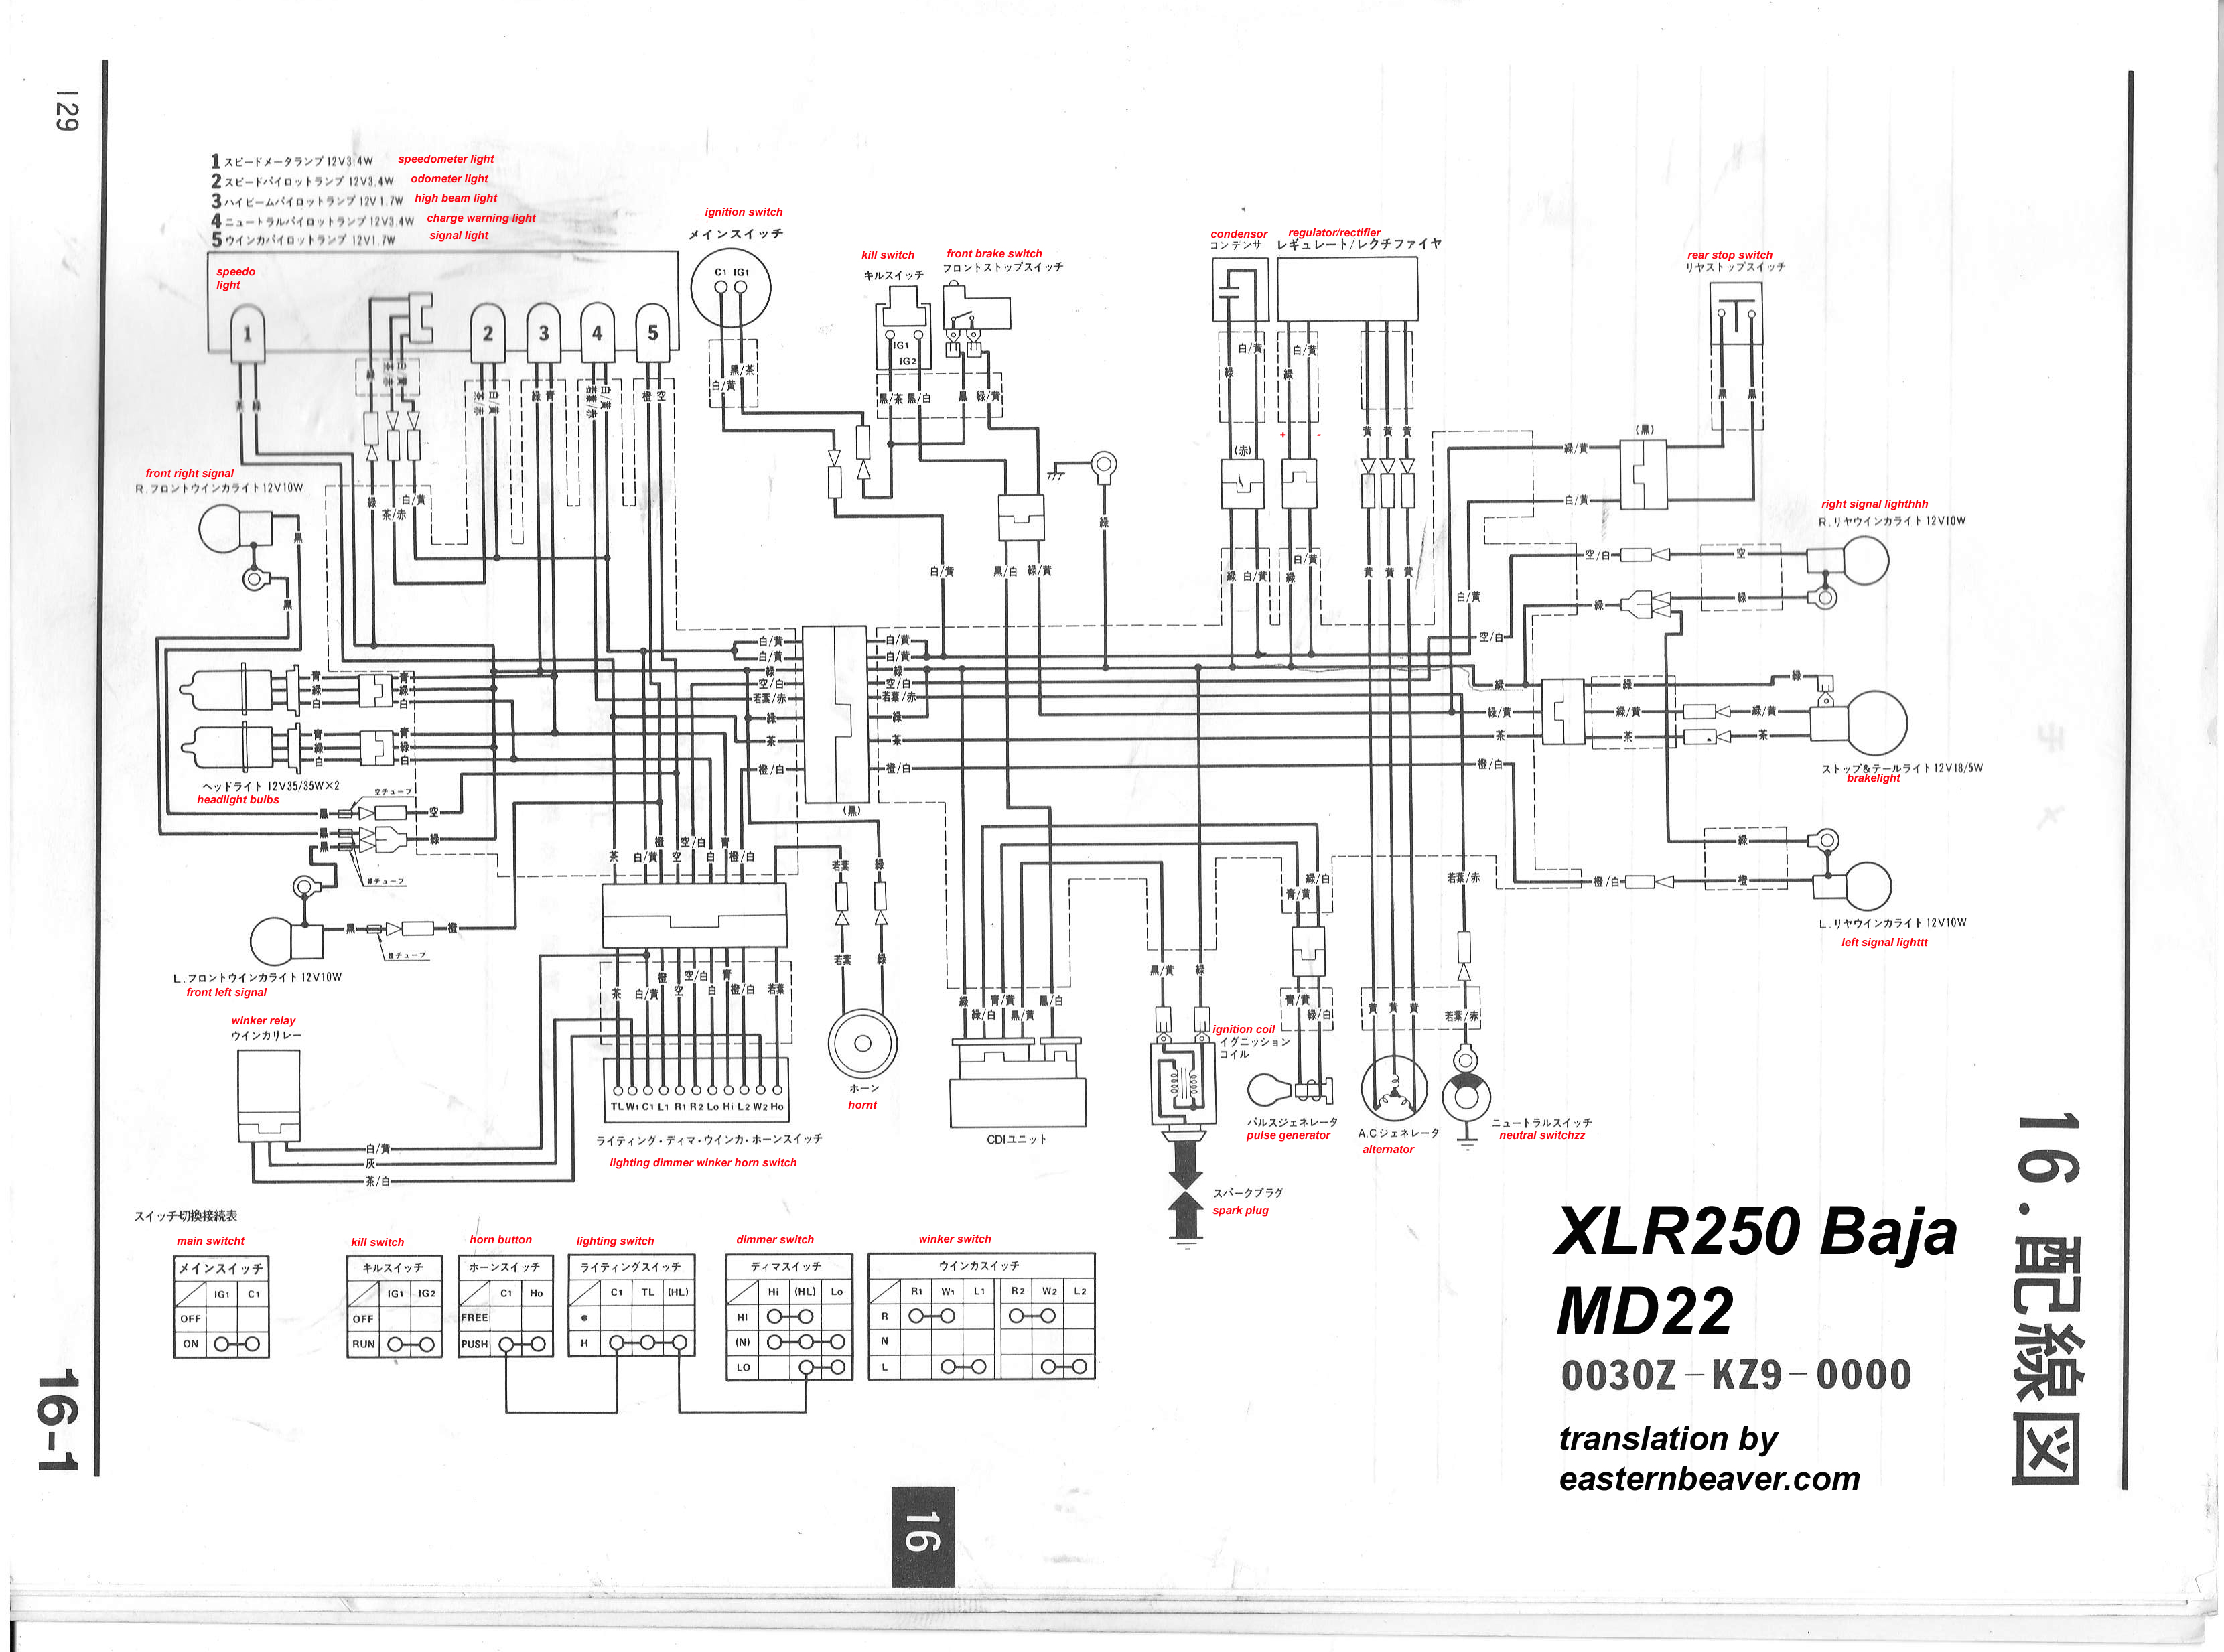 XLR250_Baja Wiring Diagram MD22?resize\\\=665%2C494\\\&ssl\\\=1 crf 450 wiring diagram wiring diagrams crf450 wiring diagram at bayanpartner.co